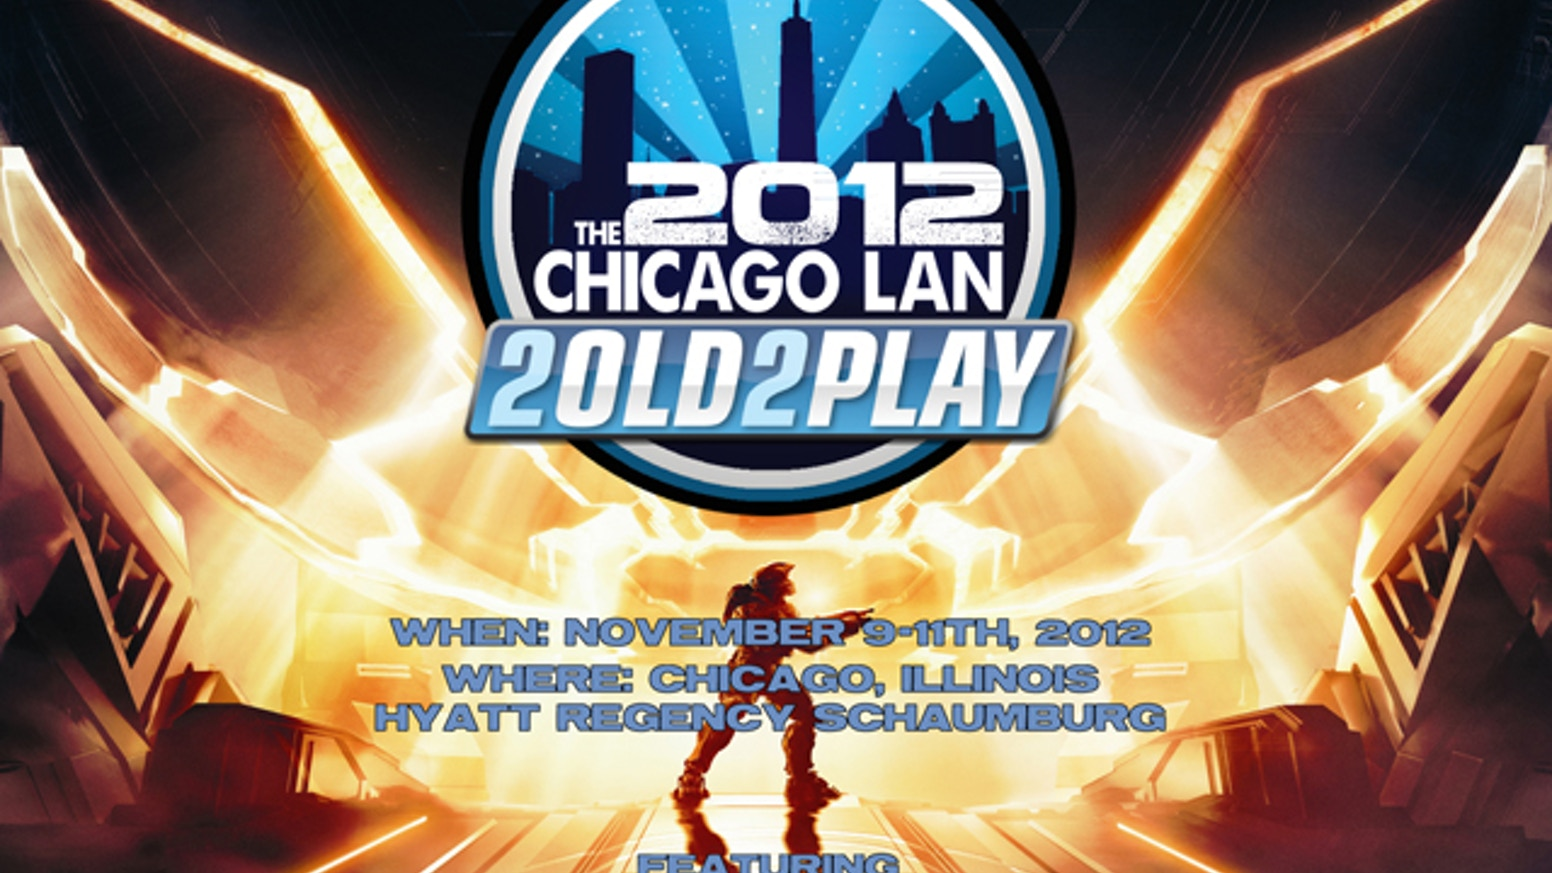 7928cb33f4ab2 The 2old2play 2012 Chicago Lan Halo 4 Release Party by Joel Albert ...